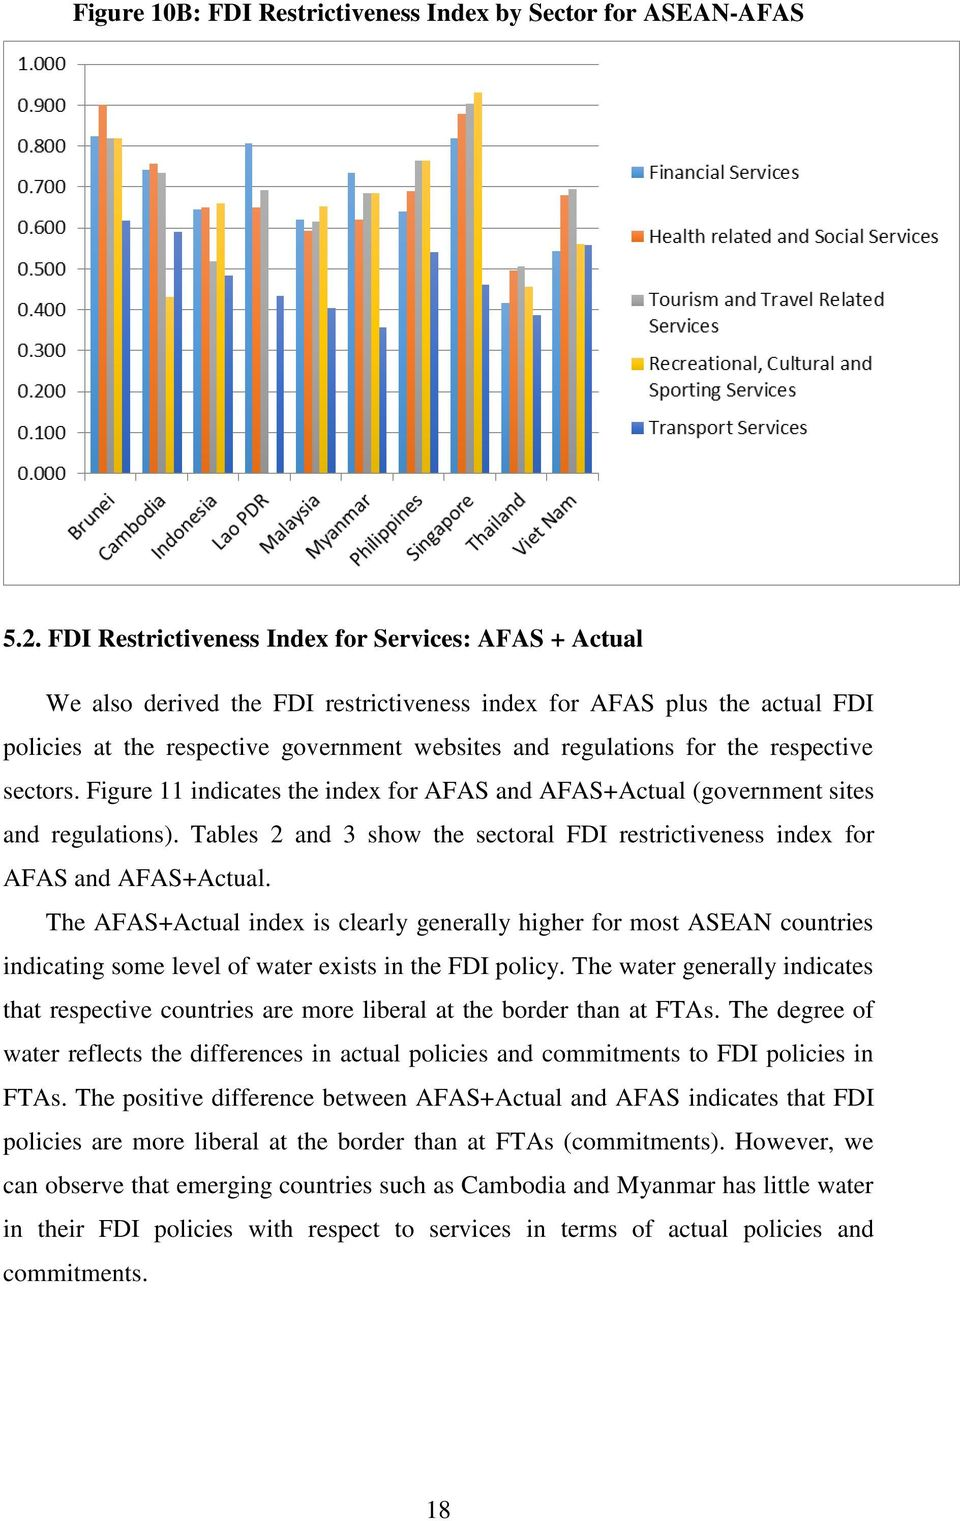 respective sectors. Figure 11 indicates the index for AFAS and AFAS+Actual (government sites and regulations). Tables 2 and 3 show the sectoral FDI restrictiveness index for AFAS and AFAS+Actual.